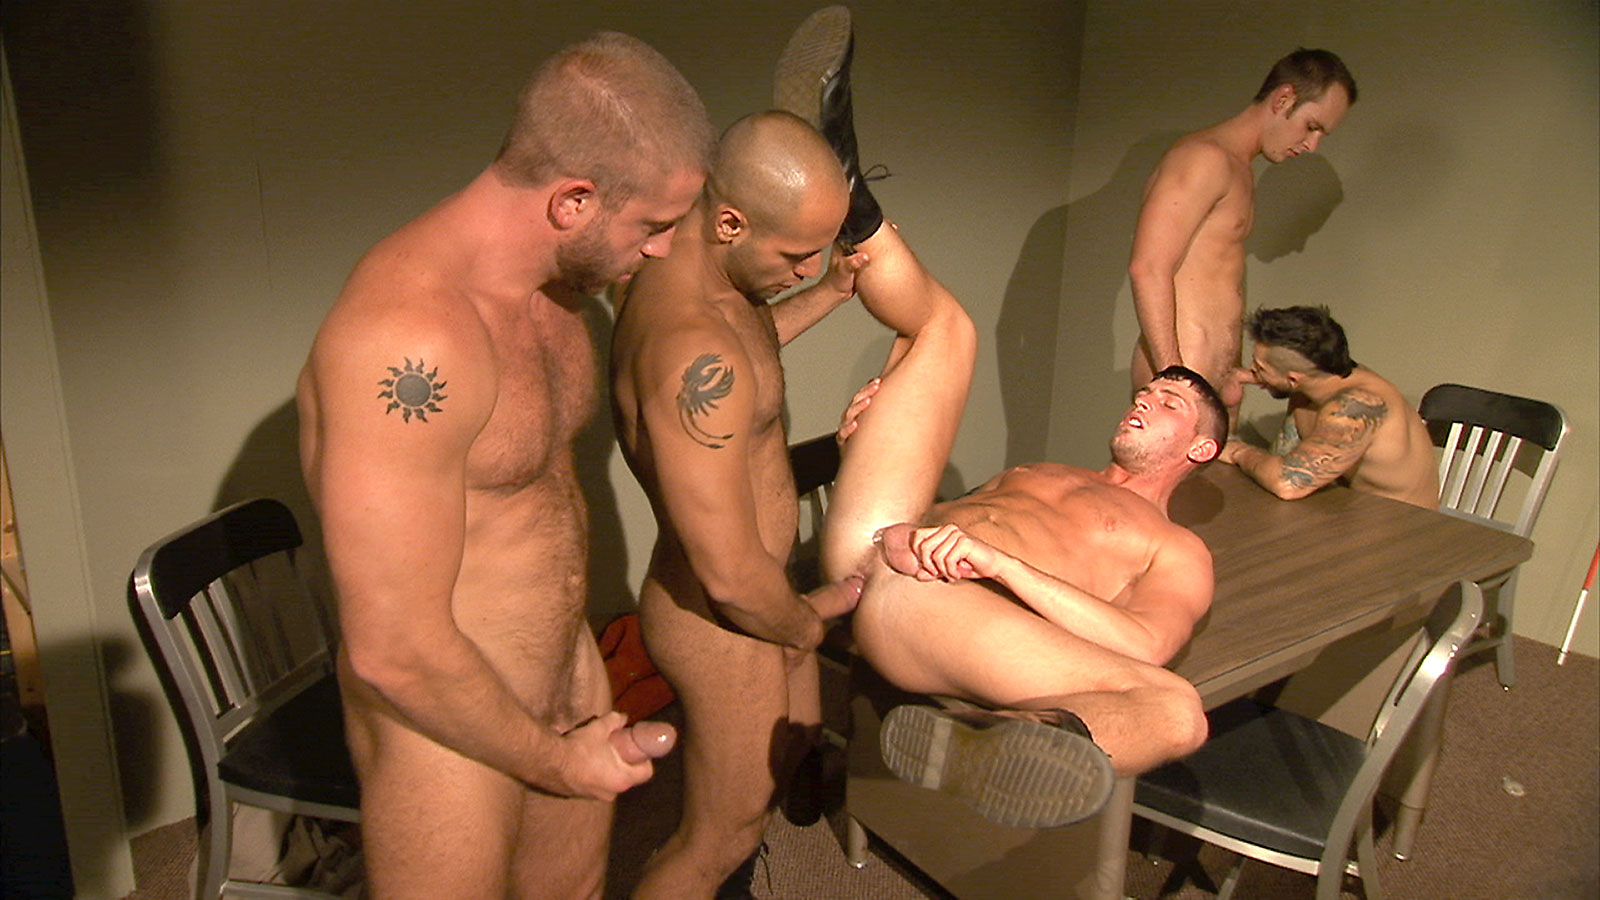 TitanMen Exclusive Hunter Marx with the Entire Cast - Inmates - Scene 5